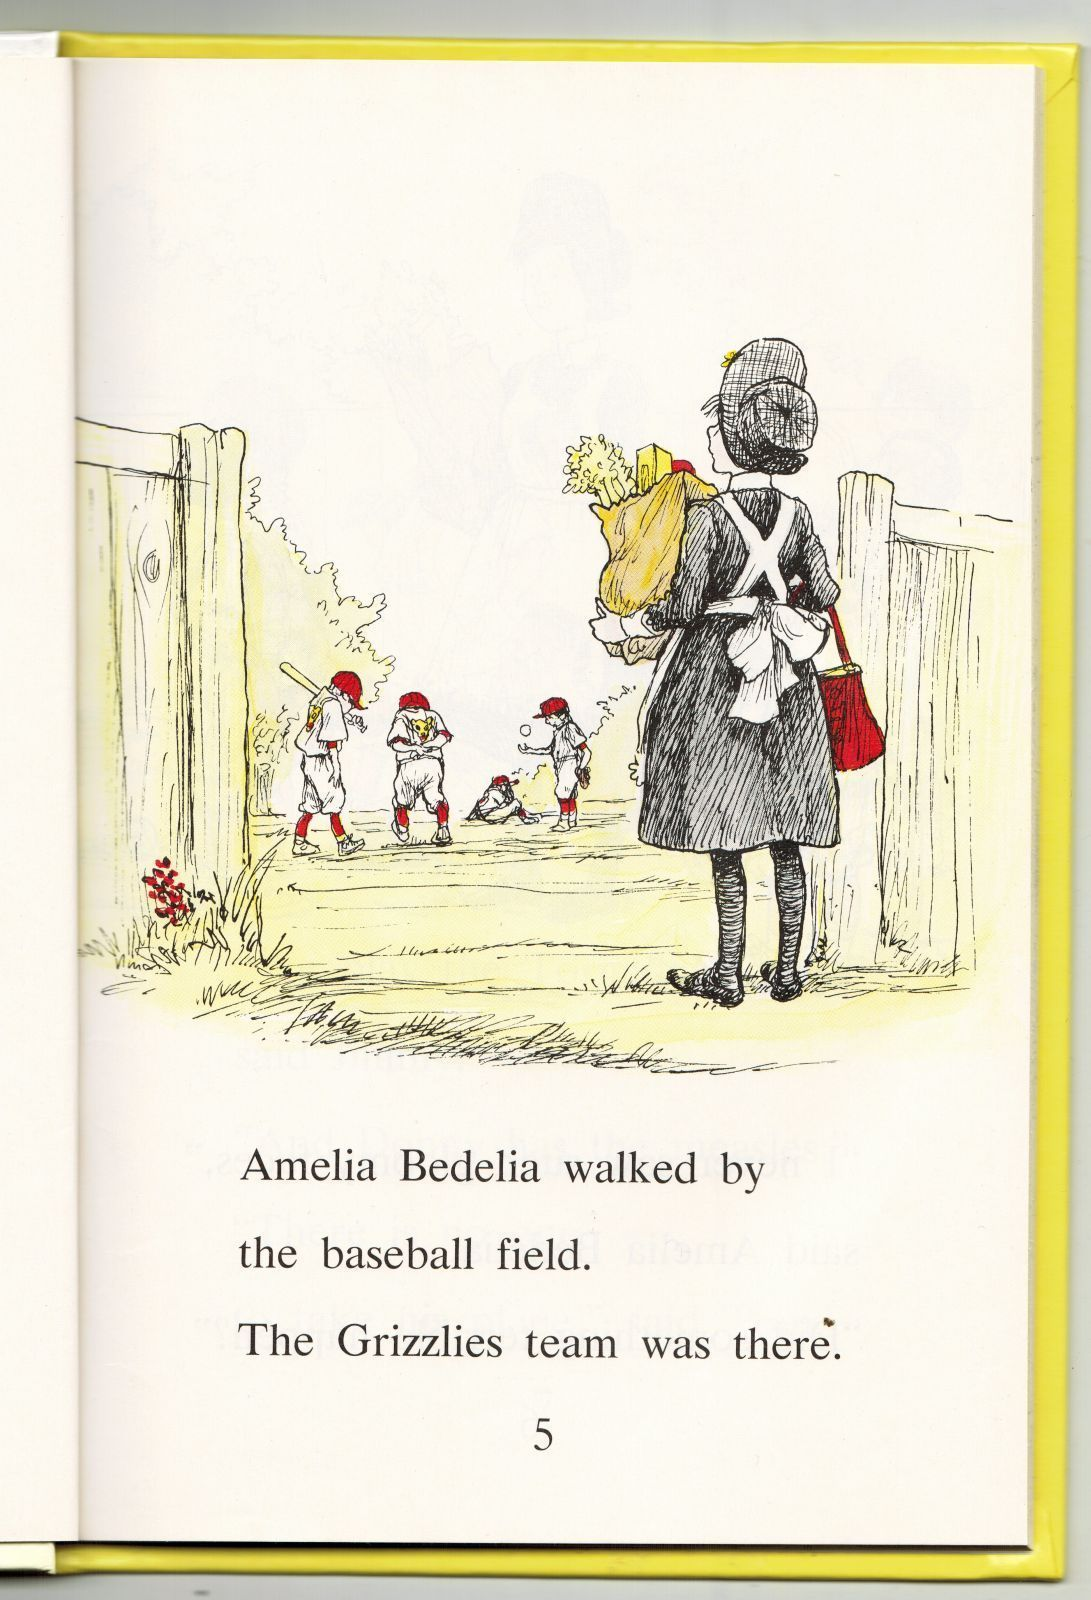 I Can Read Weekly Reader Play Ball Amelia Bedelia